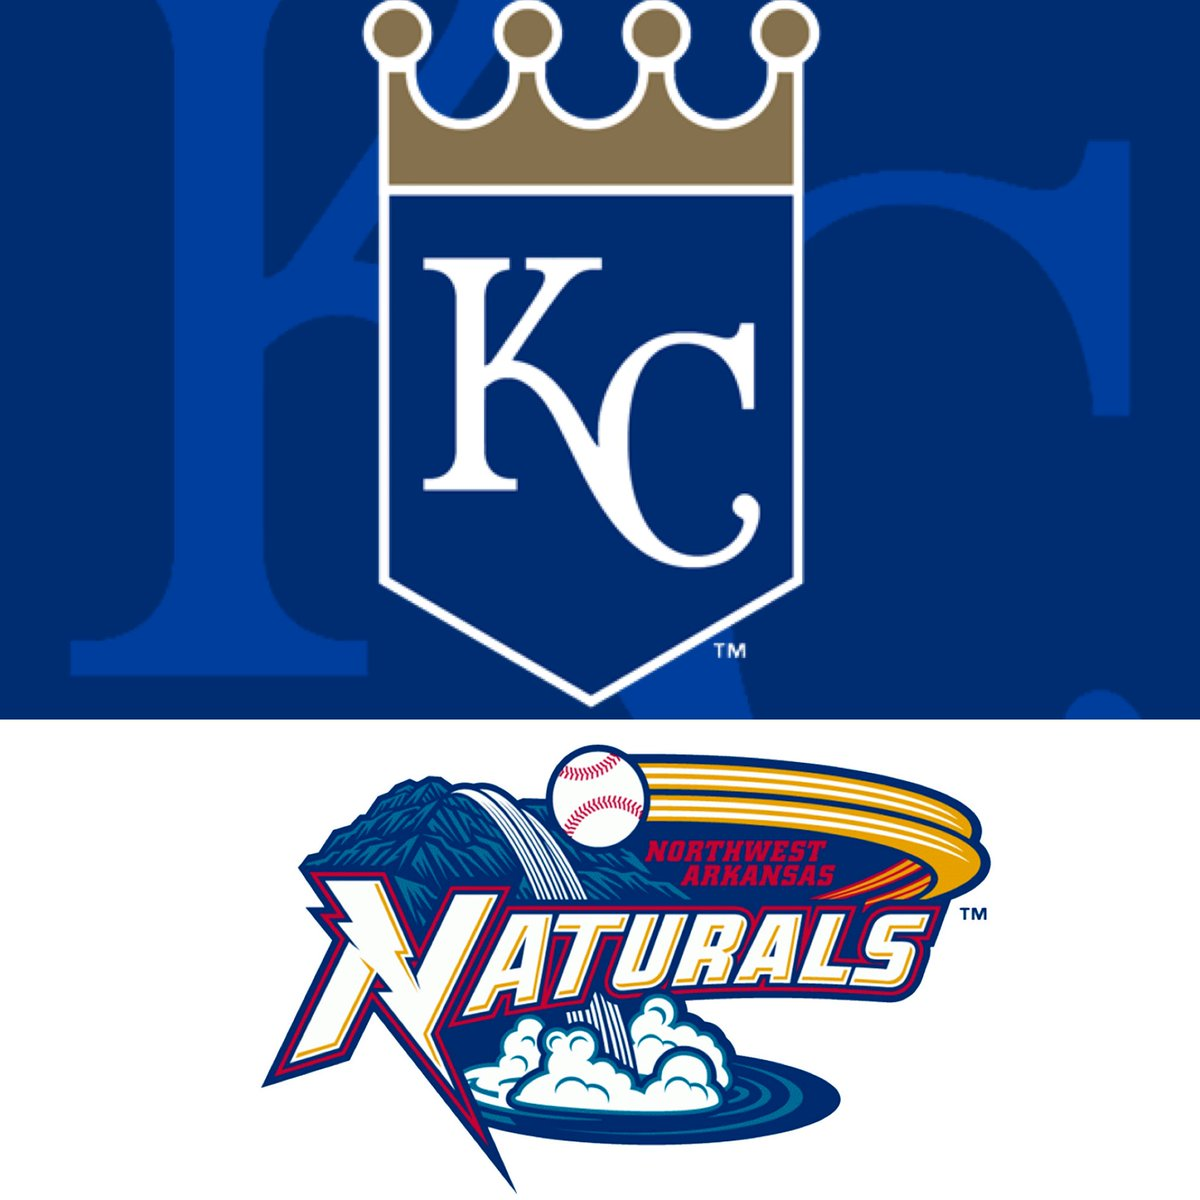 Honored and beyond excited to announce that I have accepted a position as a Player Development Coach with the Kansas City Royals organization!  Thank you to teammates, players, coaches, family and friends who have all played a huge part in getting here. Can't wait to get started! https://t.co/h1m3oOMVpZ